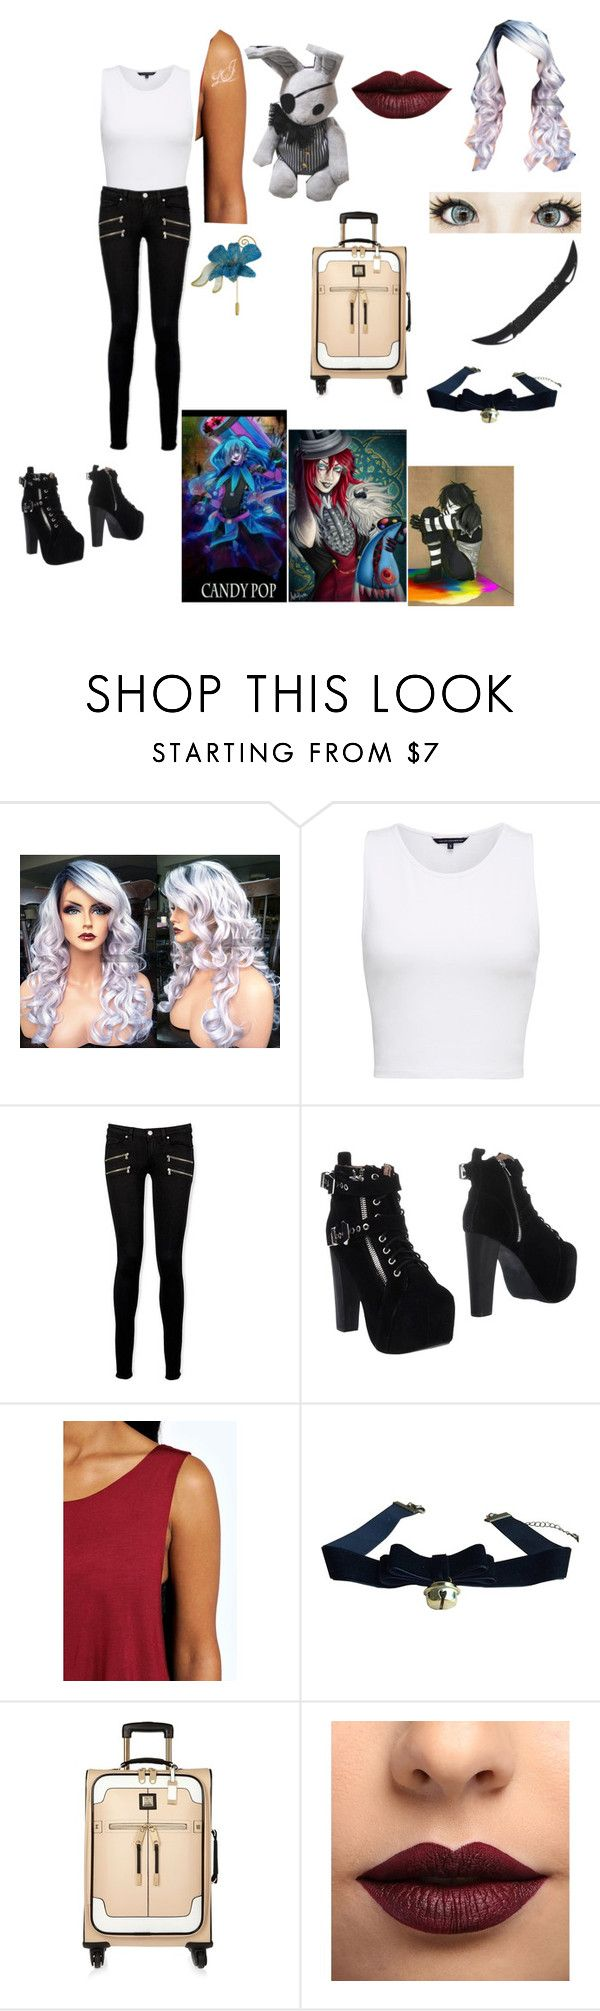 """""""Joel Sophie Grossman outfit 3"""" by laughing-jack5 ❤ liked on Polyvore featuring French Connection, Paige Denim, Jeffrey Campbell, Boohoo, Ciel, River Island, LASplash and NOVICA"""